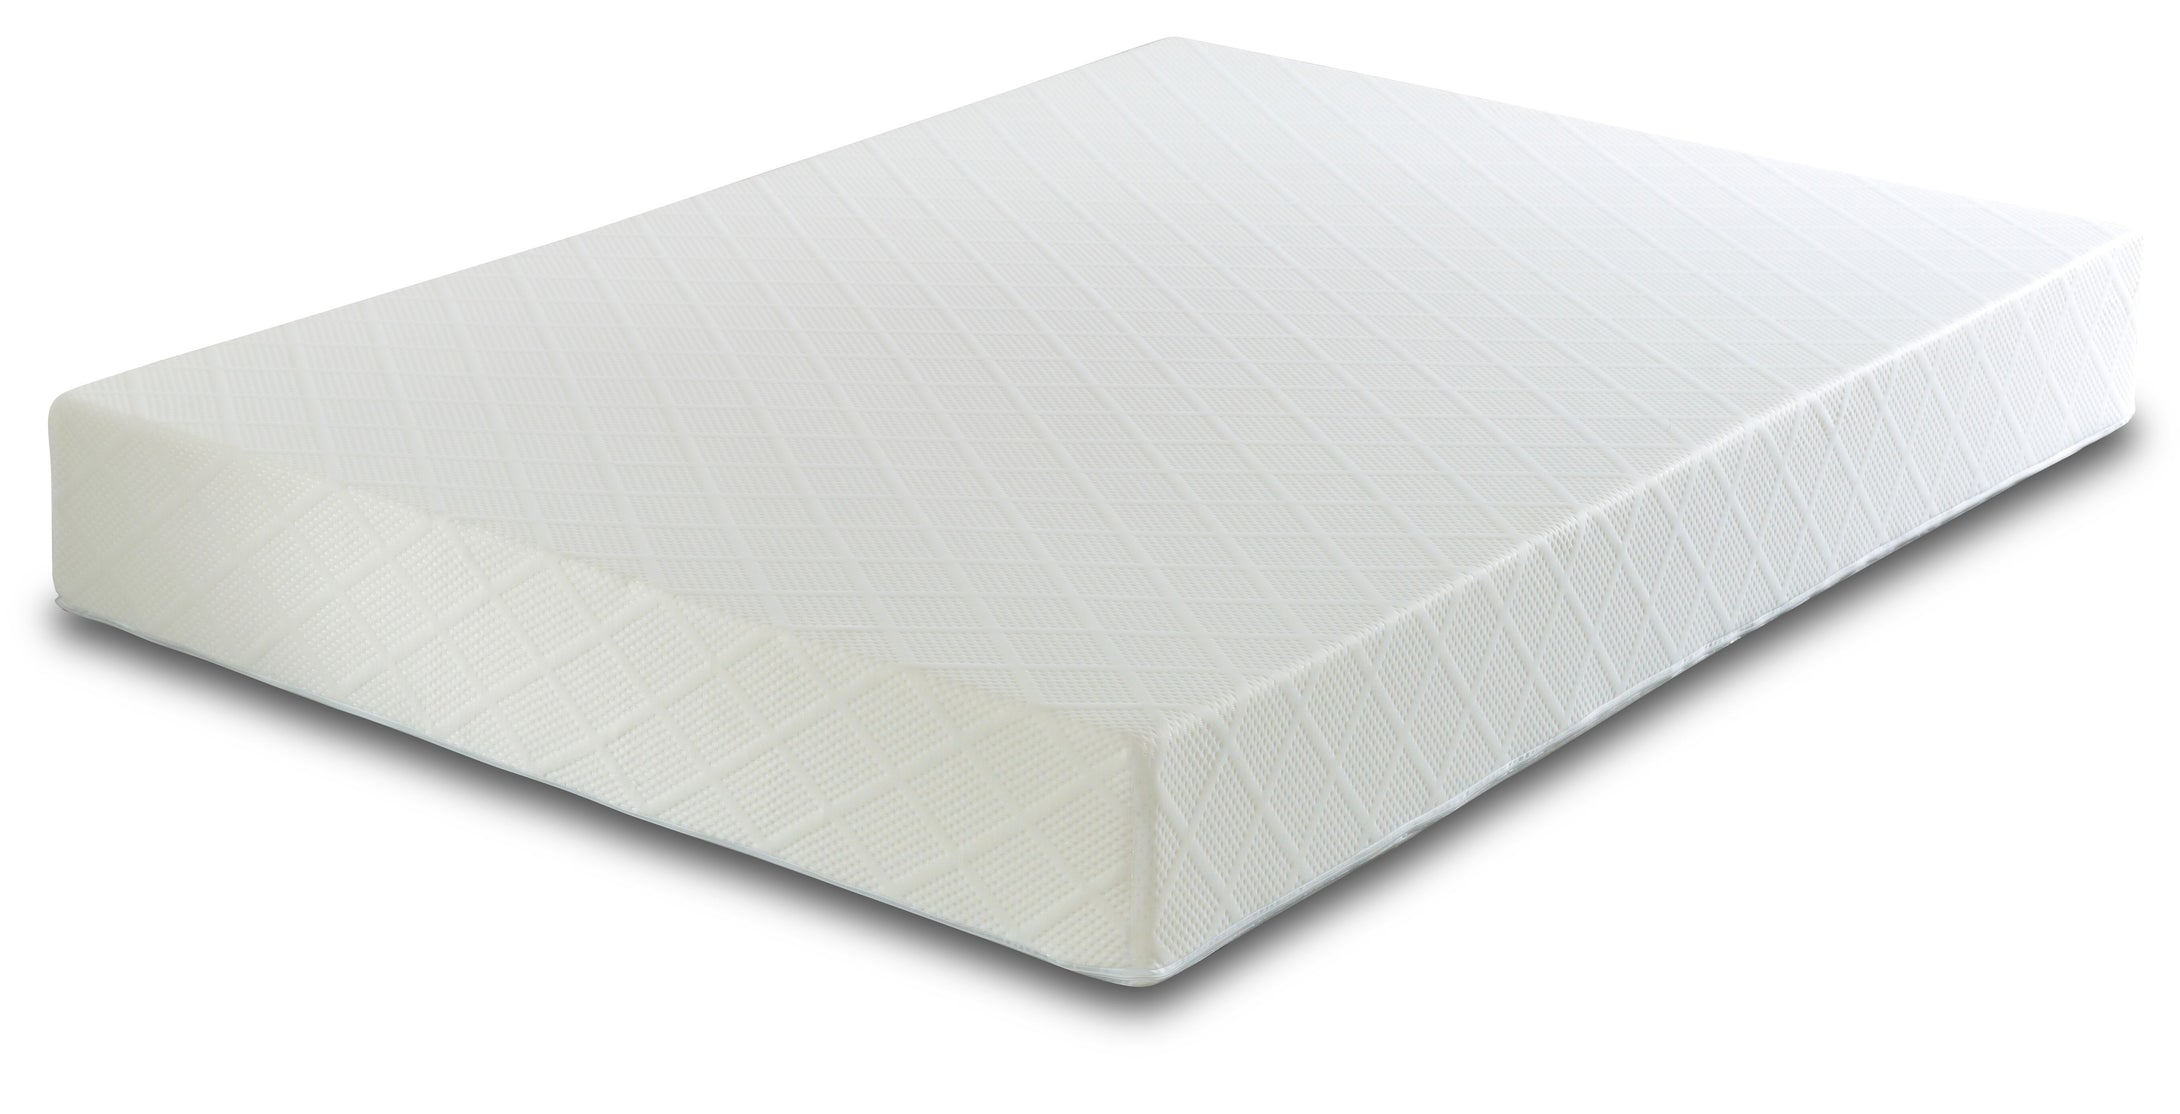 children's memory foam mattress | Flex 1000 visco therapy mattress-Mattress-bedsmart